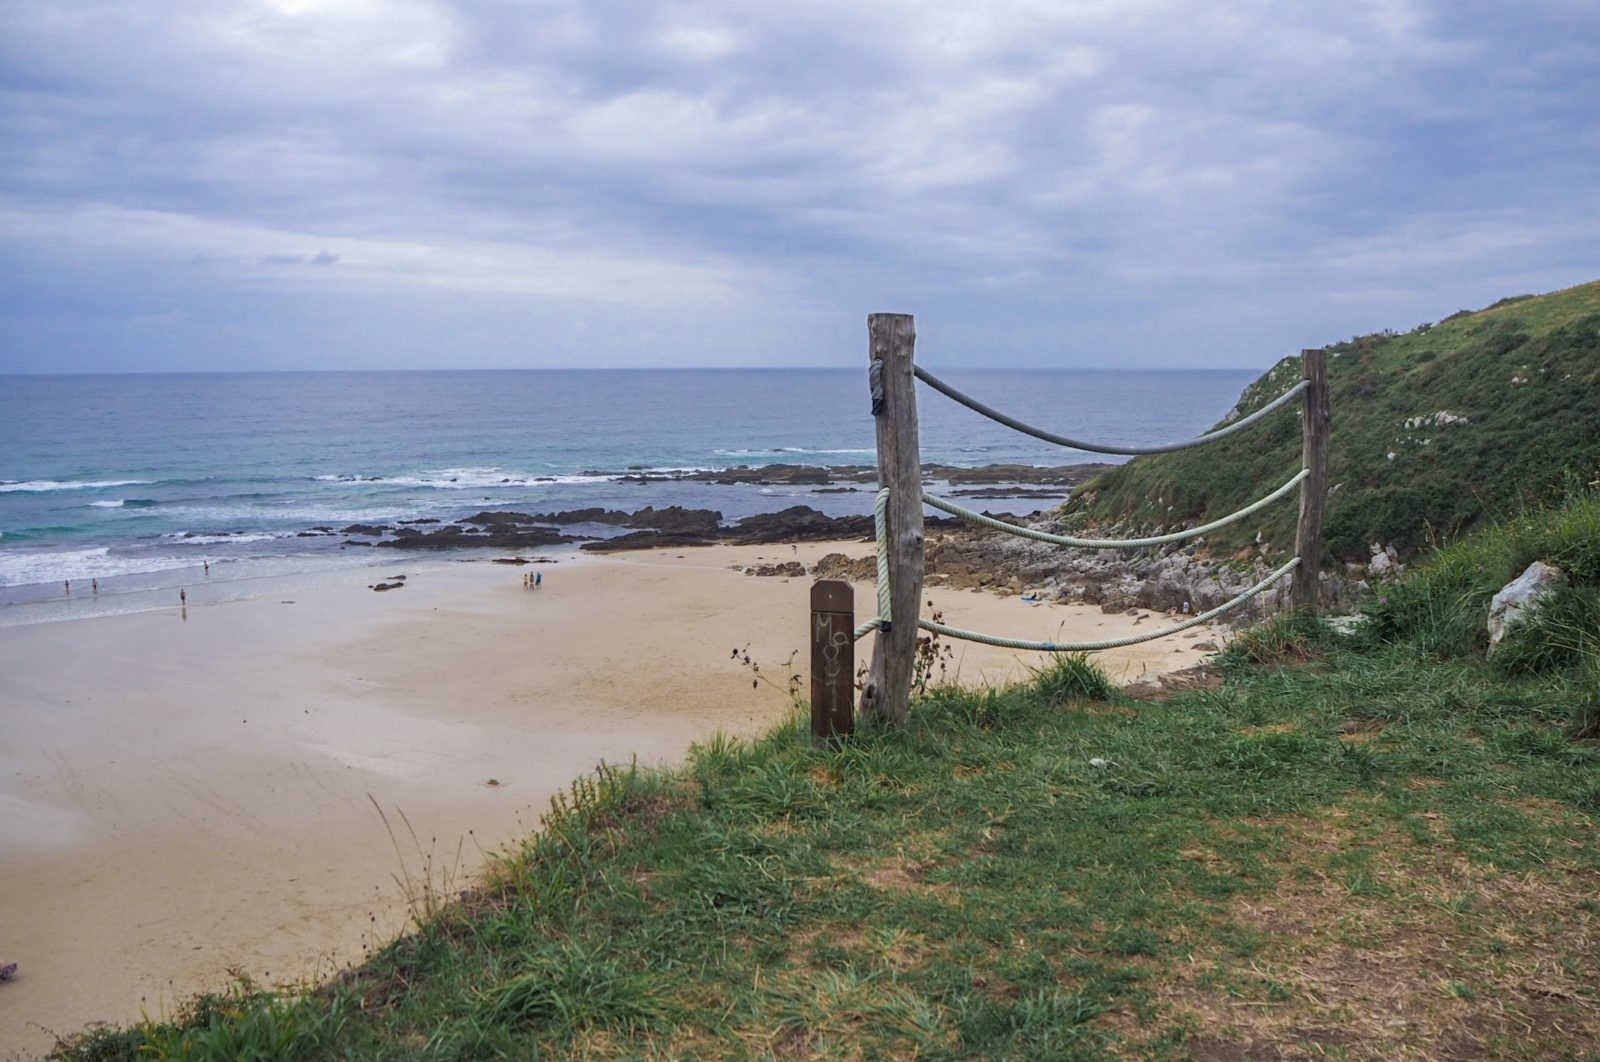 review of Camping La Paz in Asturias